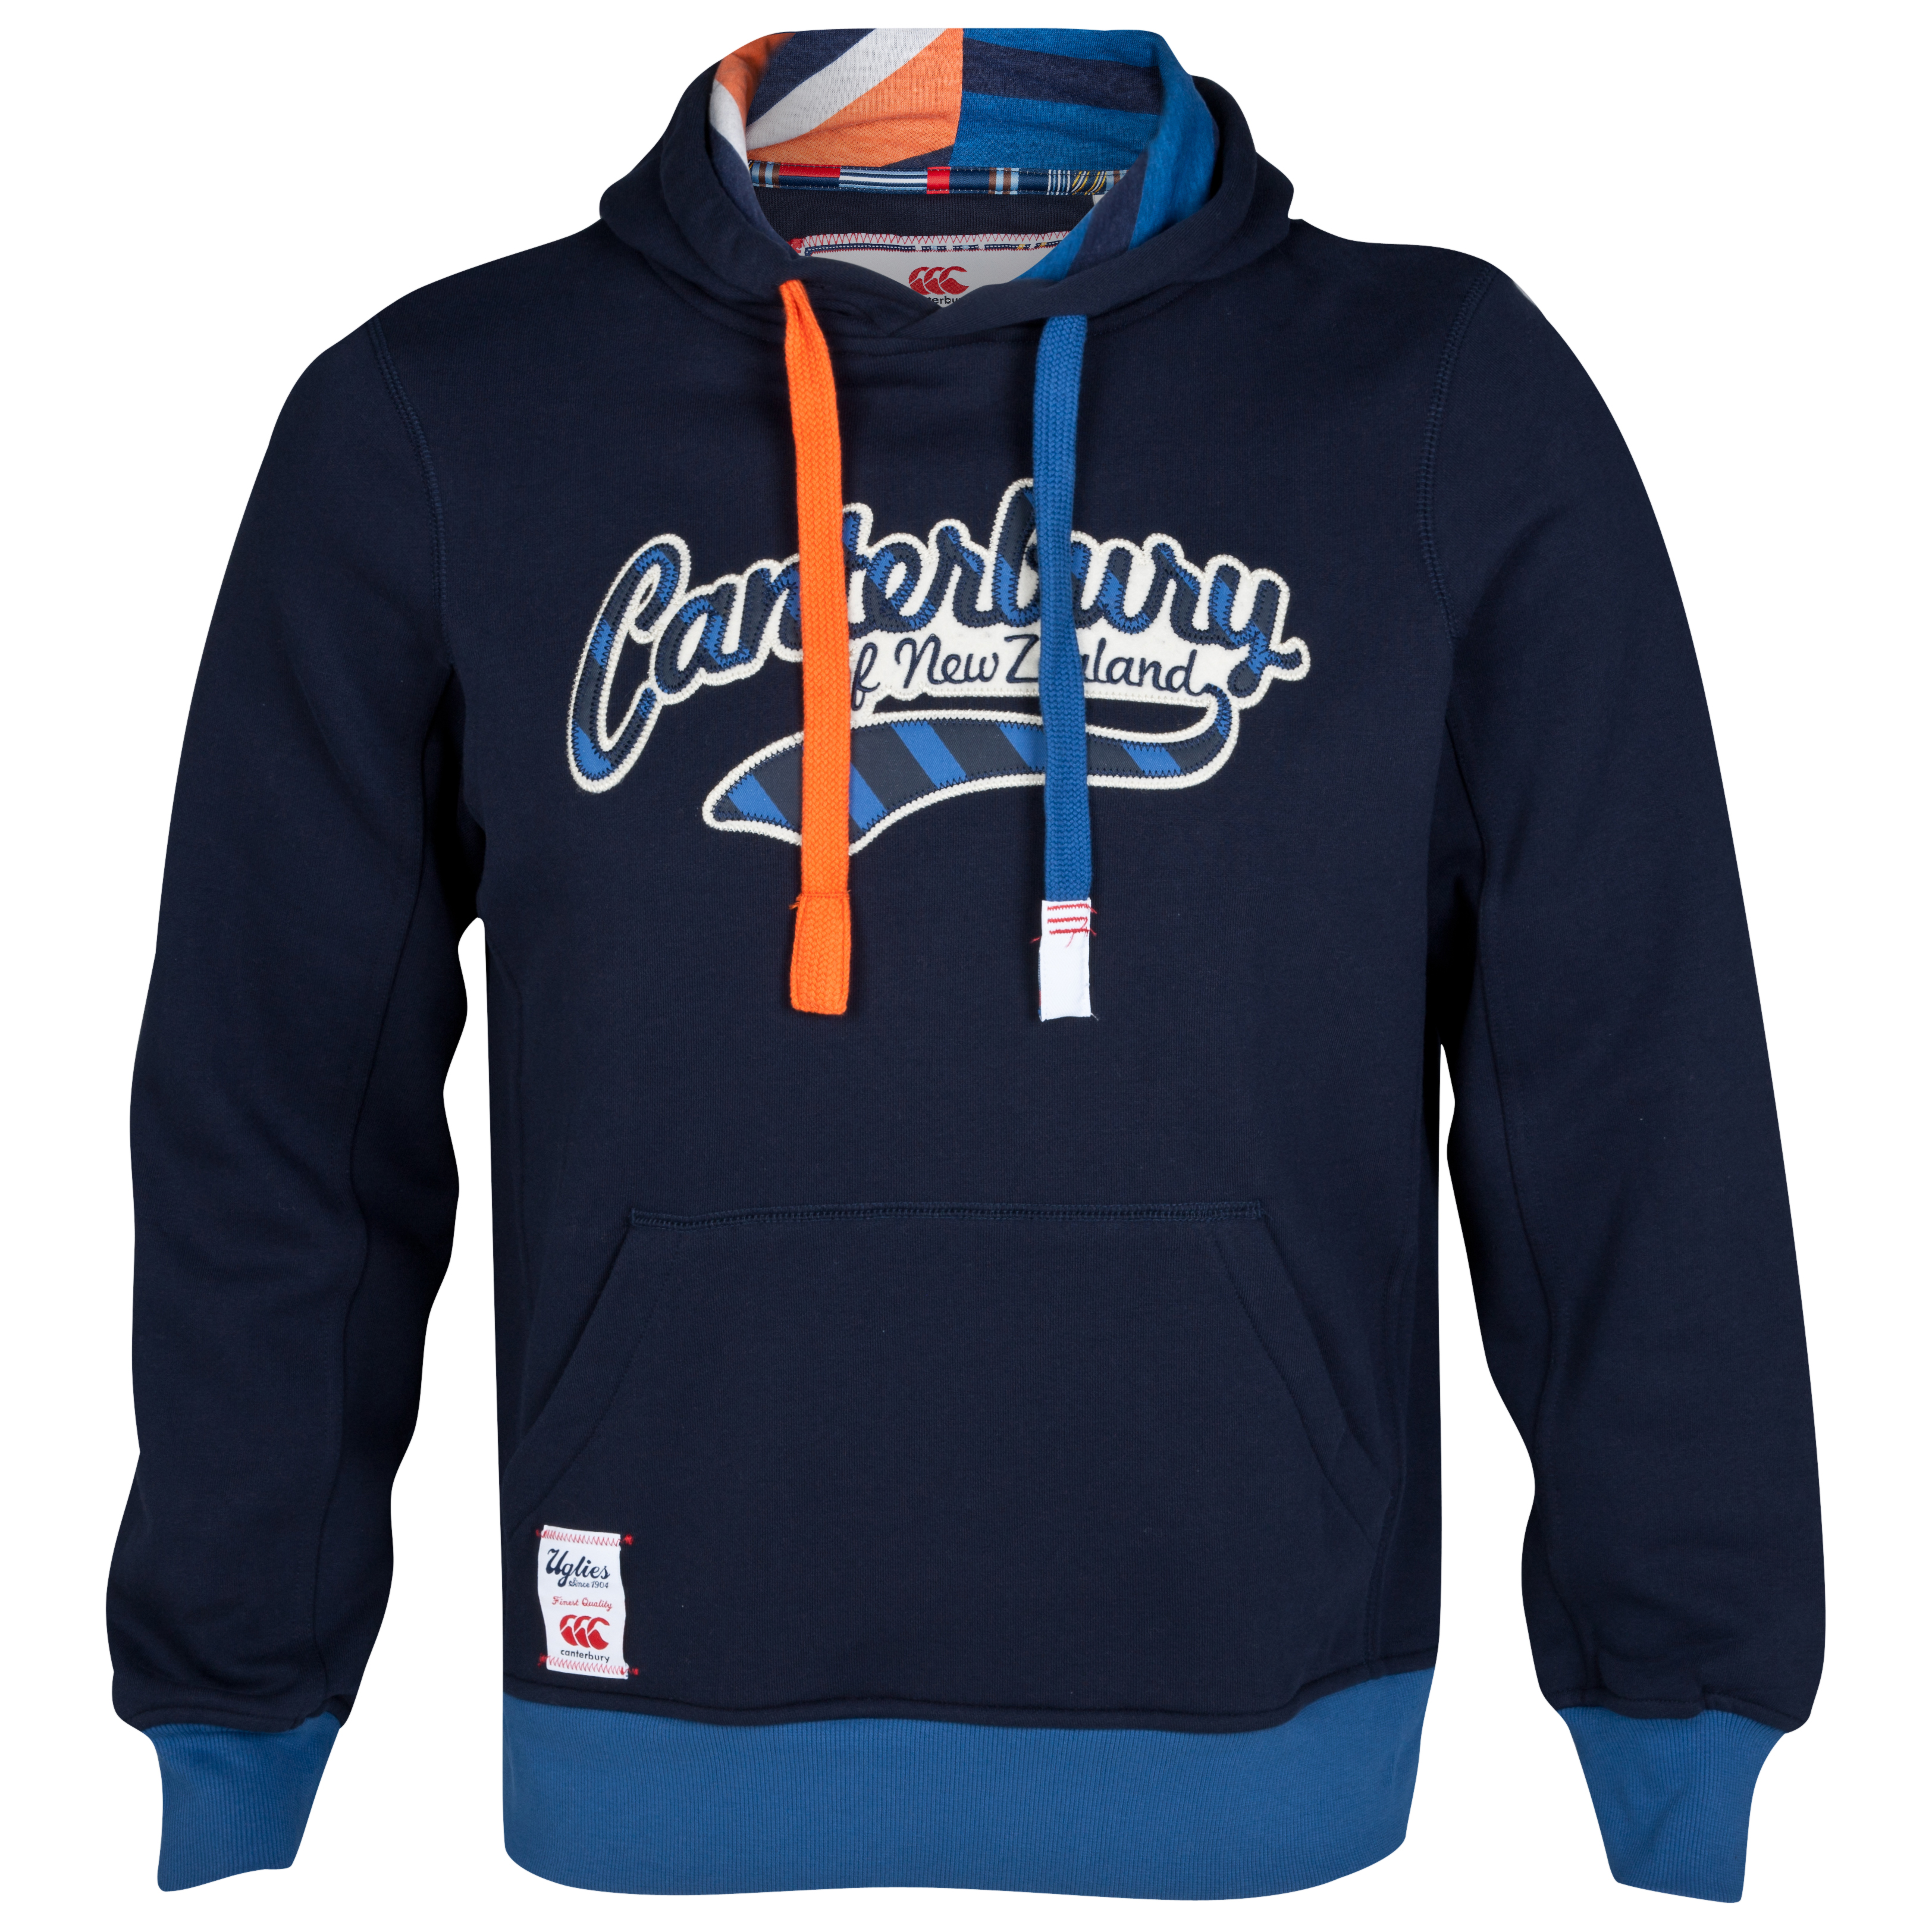 Canterbury Uglies Hoody - Navy